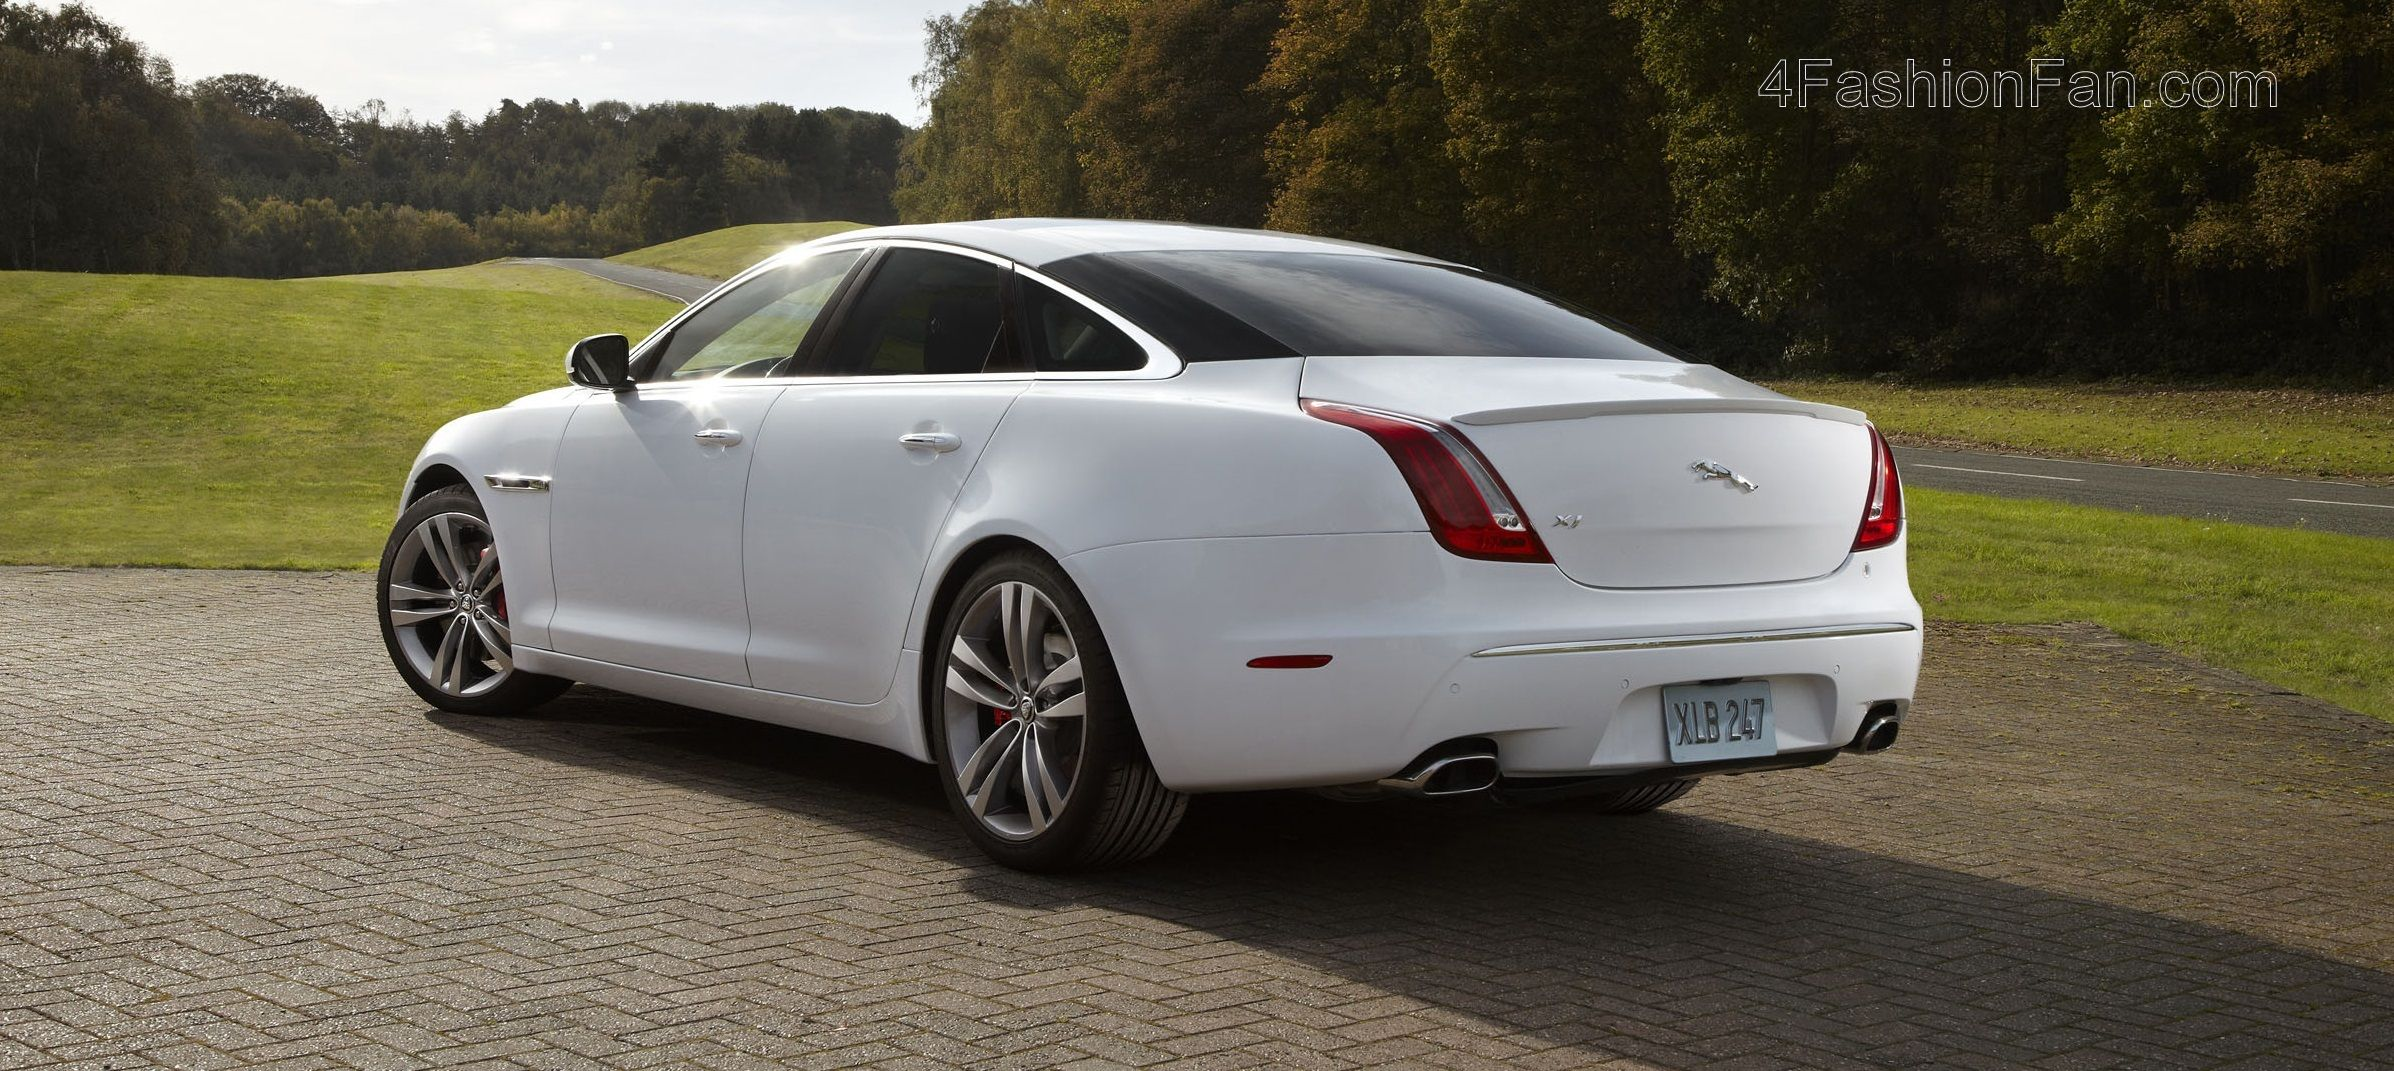 The All New Jaguar Xj Comes Loaded With A 5 0 L Supercharged Aj 8